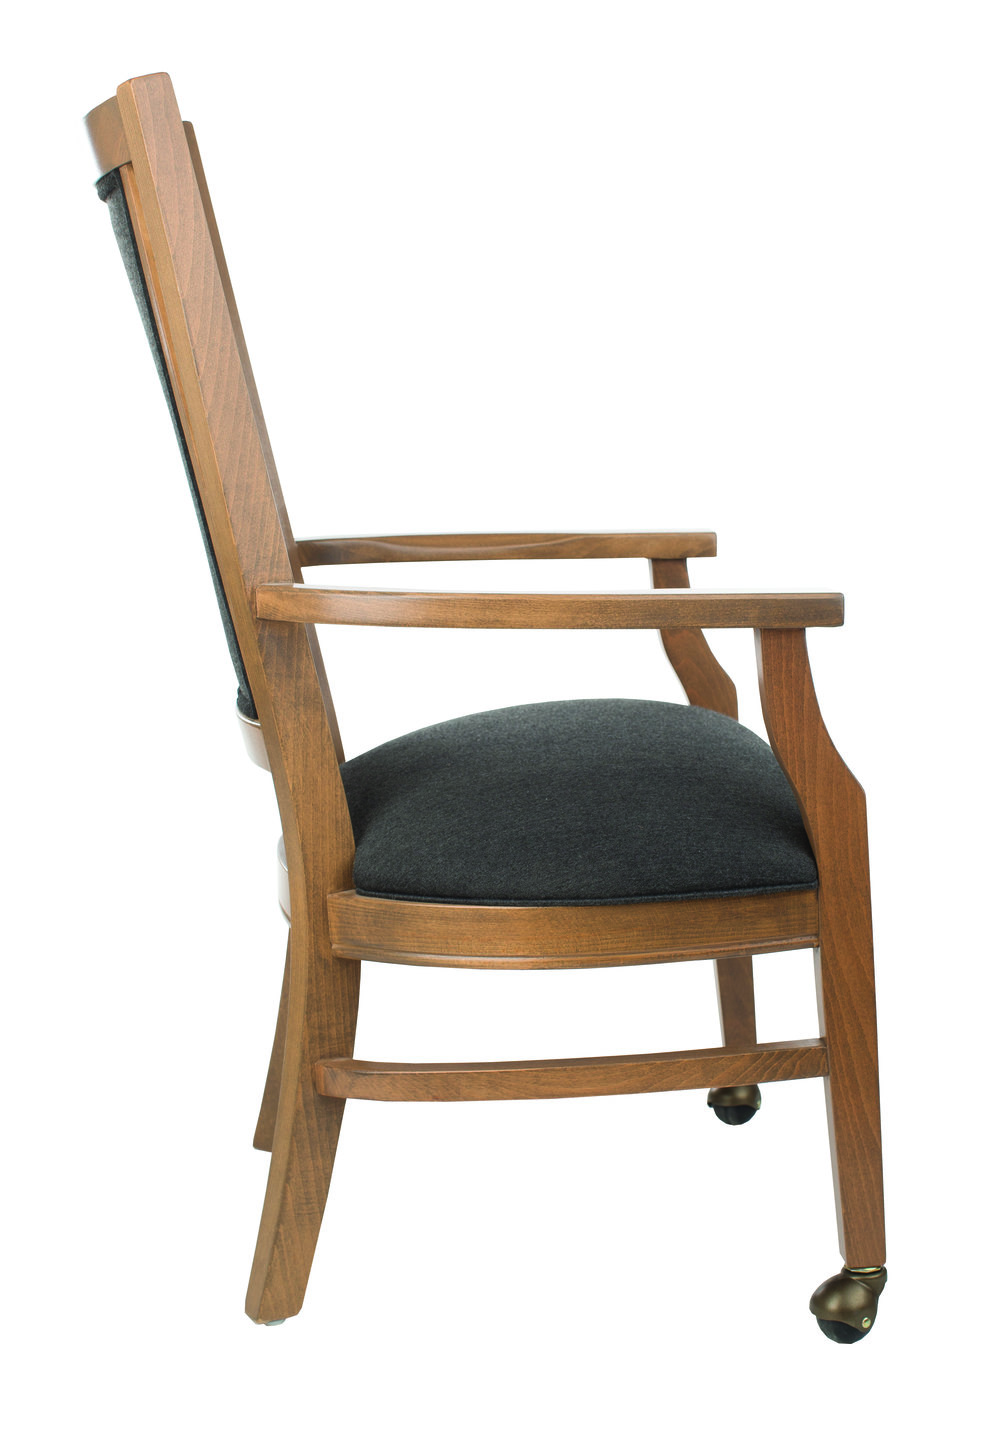 Sutton_Armchair_with_casters_Side).jpg